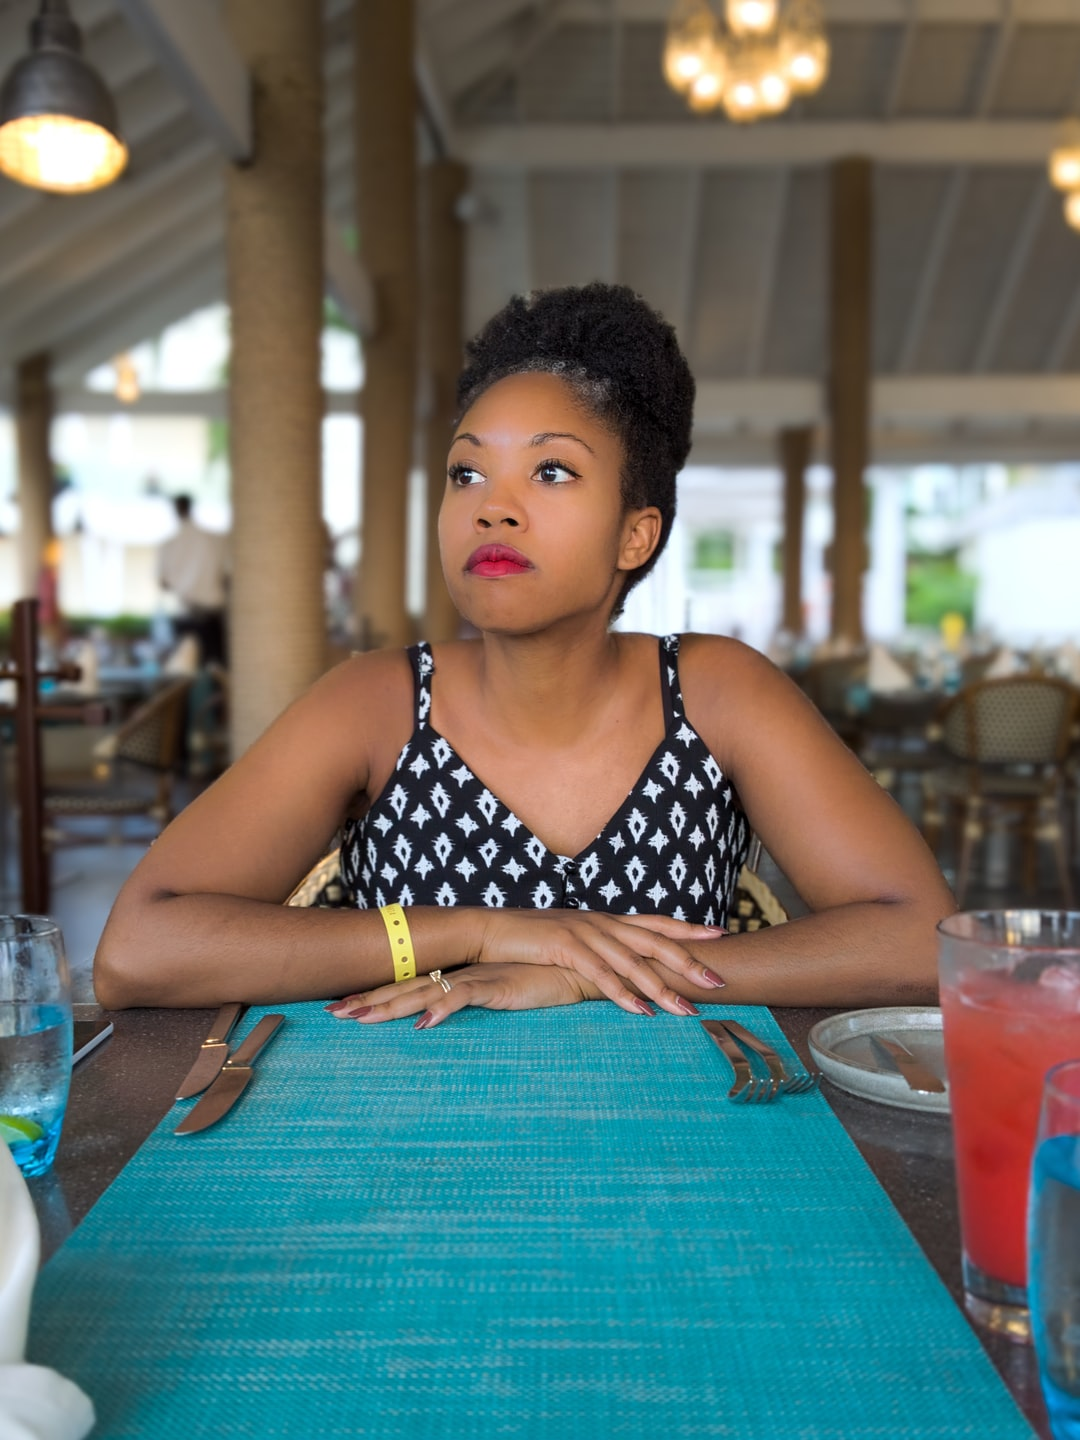 This open air seafood restaurant in Ochos Rios Jamaica provided perfectly even lighting for this shot. We had one whole side of the restaurant to ourselves which really helped clear the scene. I was hoping to capture both her impatience and serenity.